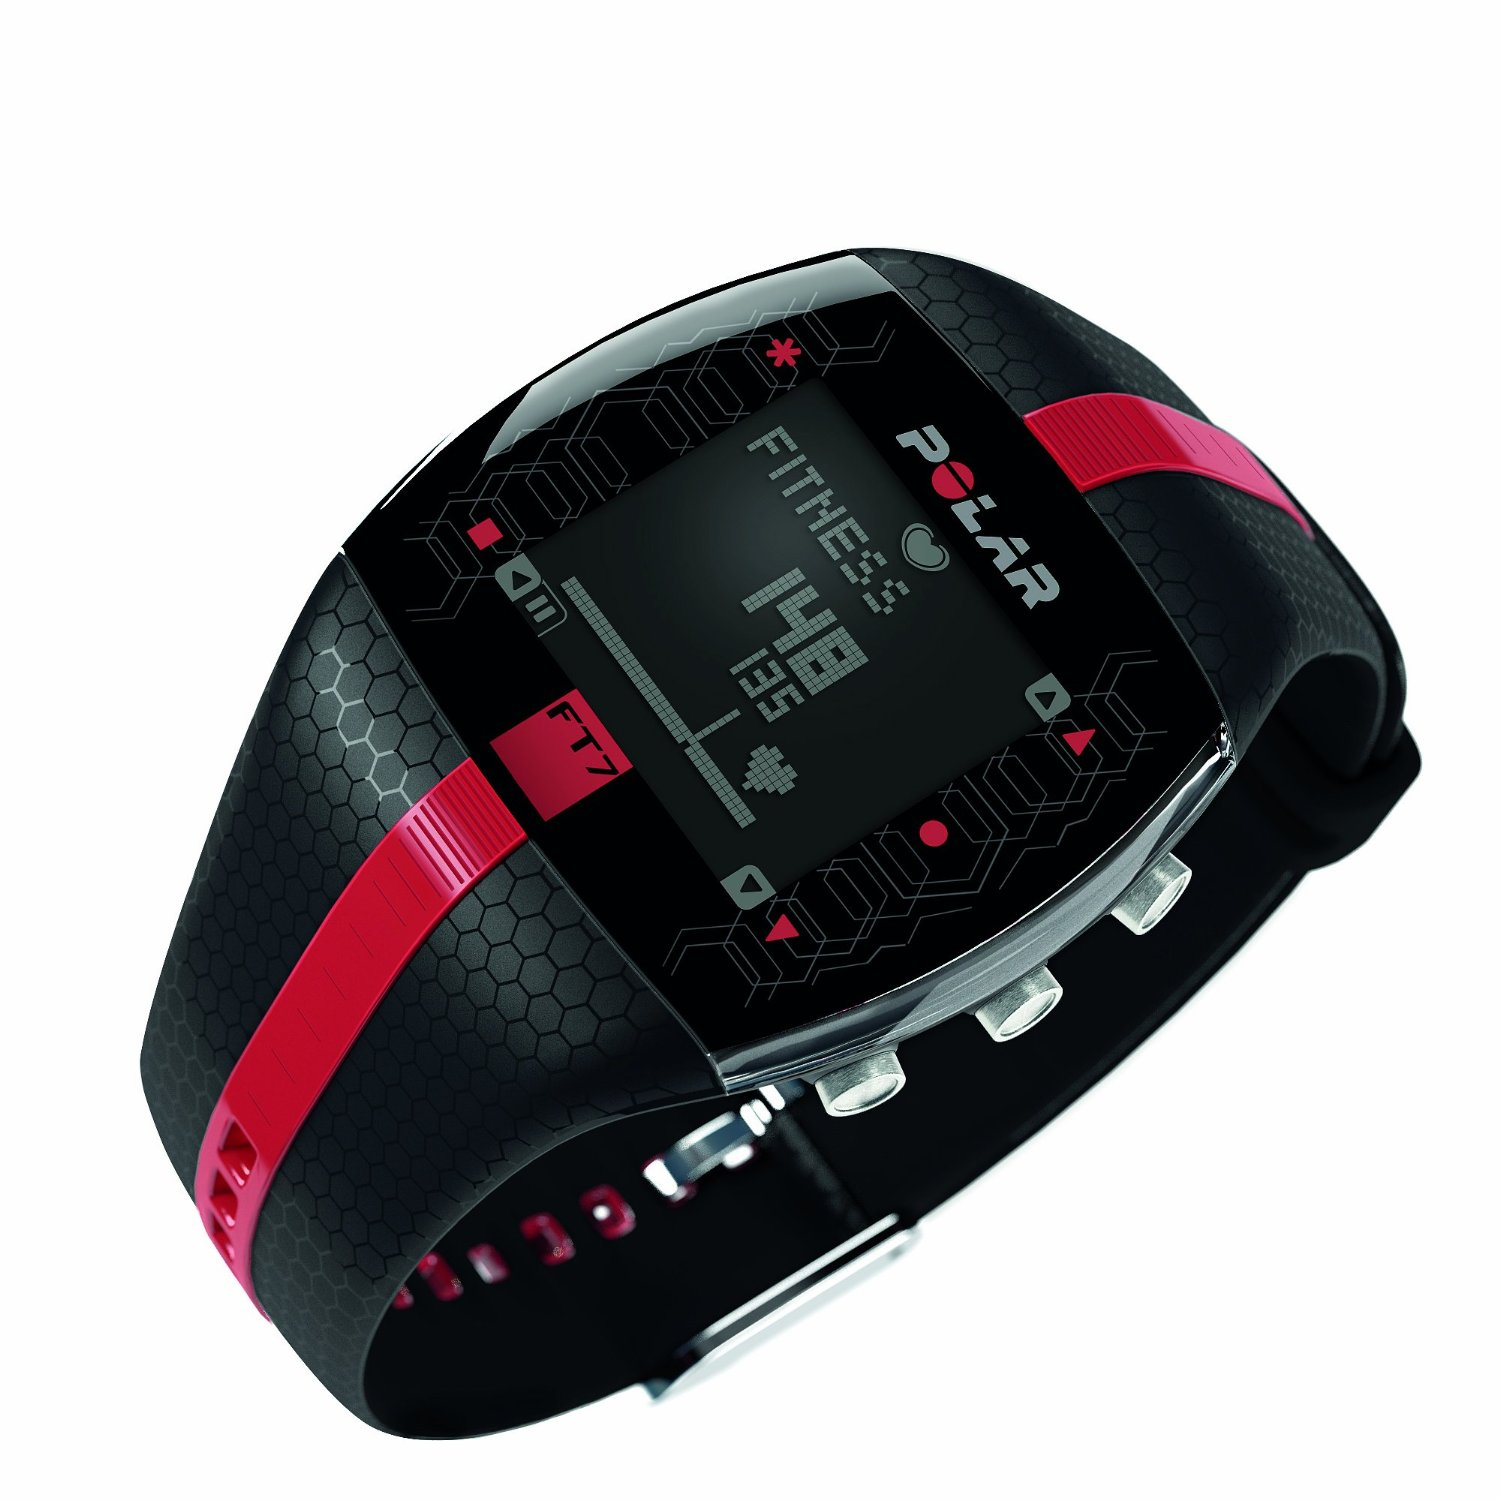 Polar FT7 Heart Rate Monitor in Black/Red Review